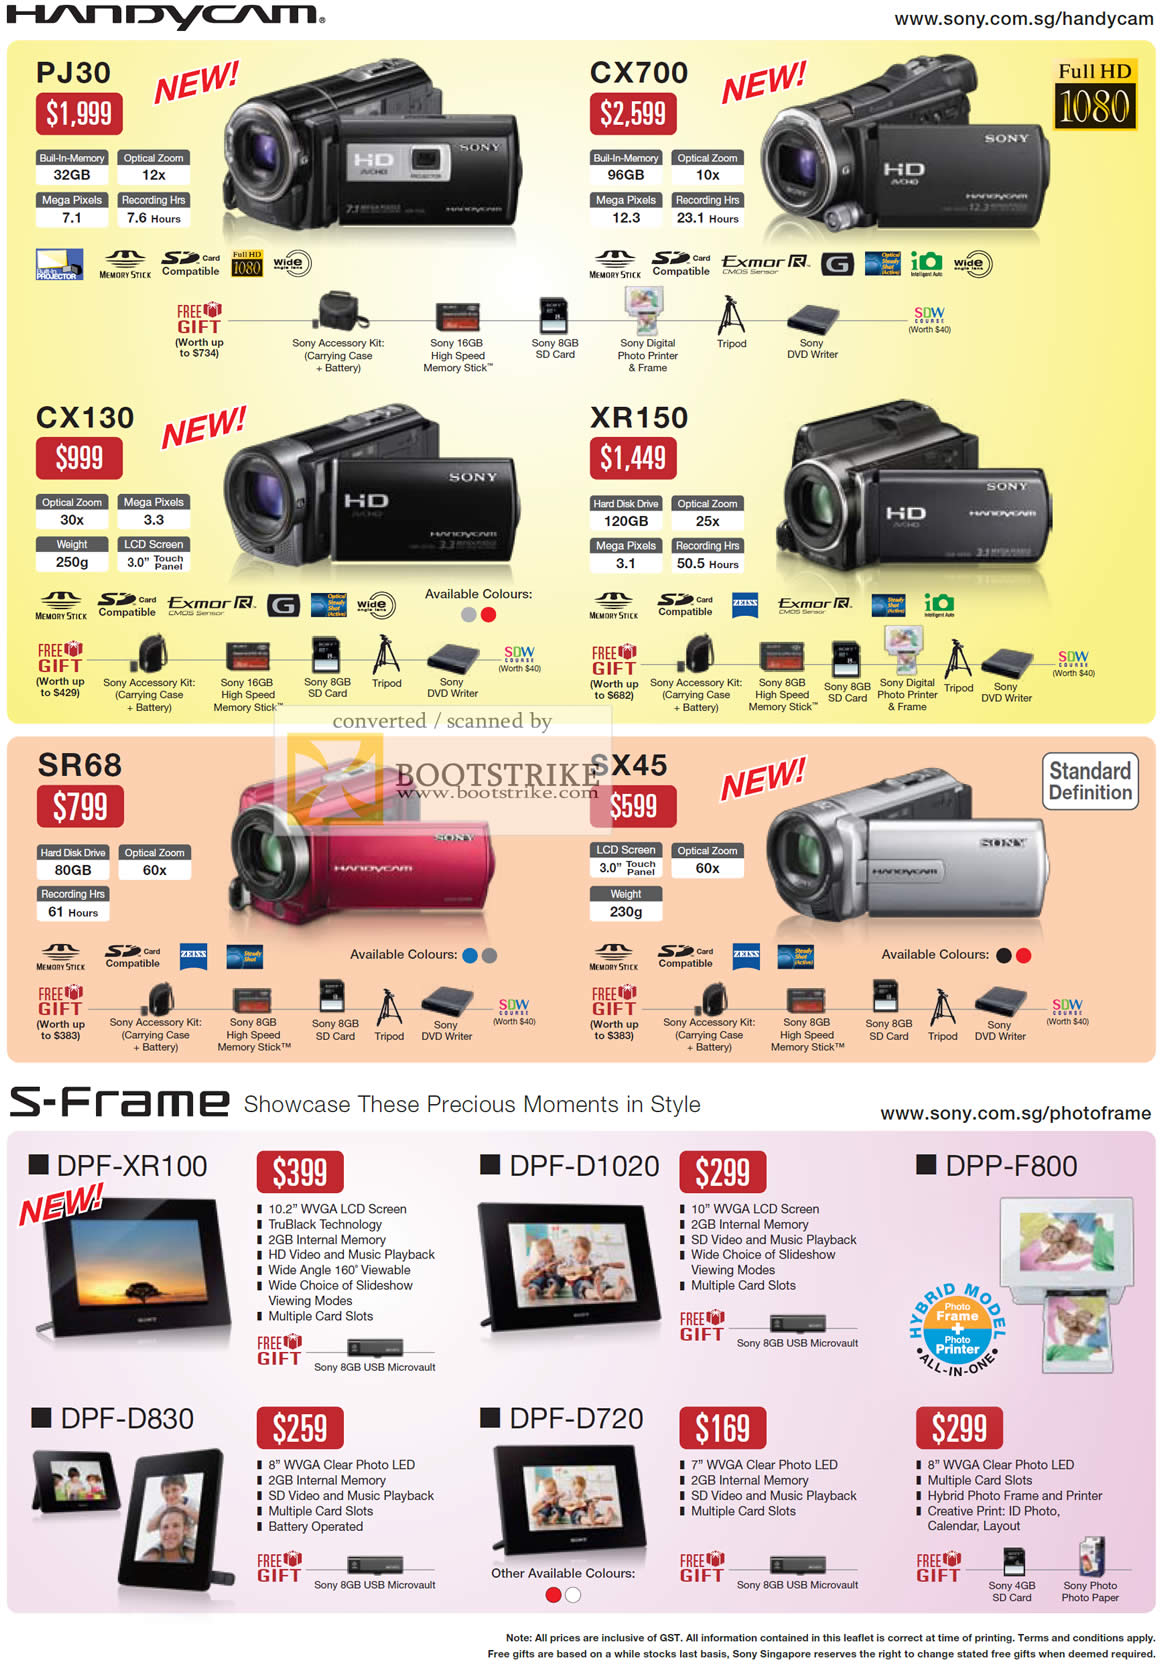 IT Show 2011 price list image brochure of Sony Video Camcorders Handycam PJ30 CX700 CX130 XR150 SR68 SX45 S-Frame Digital Frame DPF-XR100 D1020 D830 D720